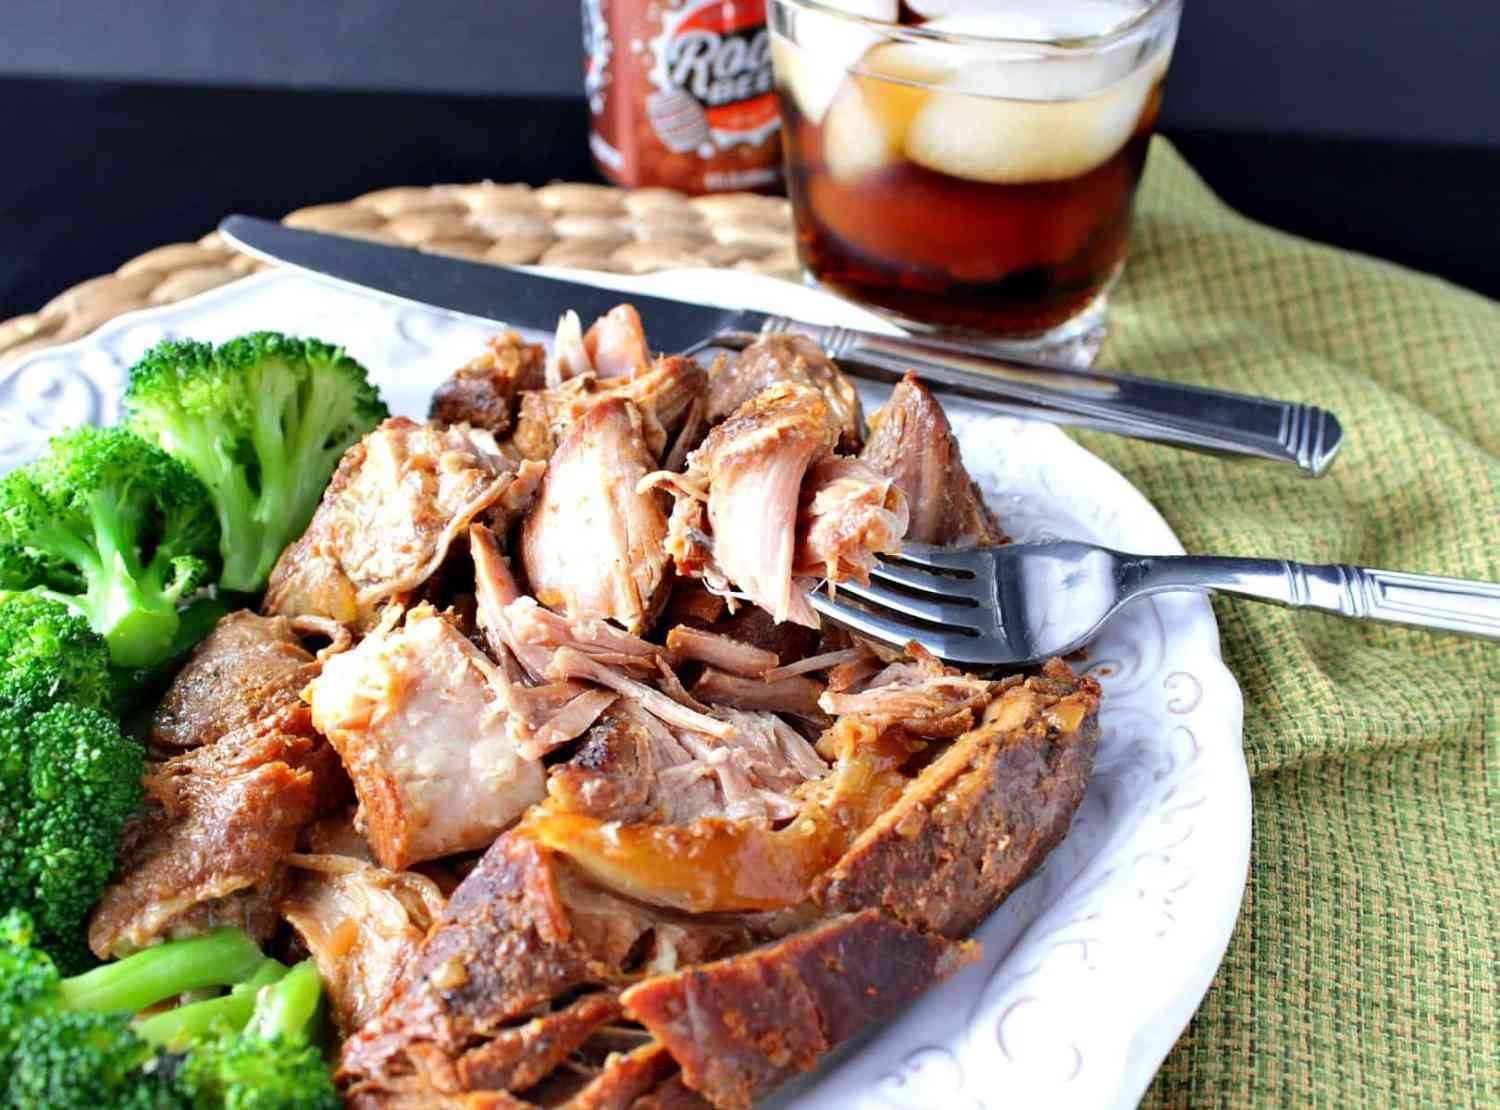 Slow Cooker root beer country ribs on a plate